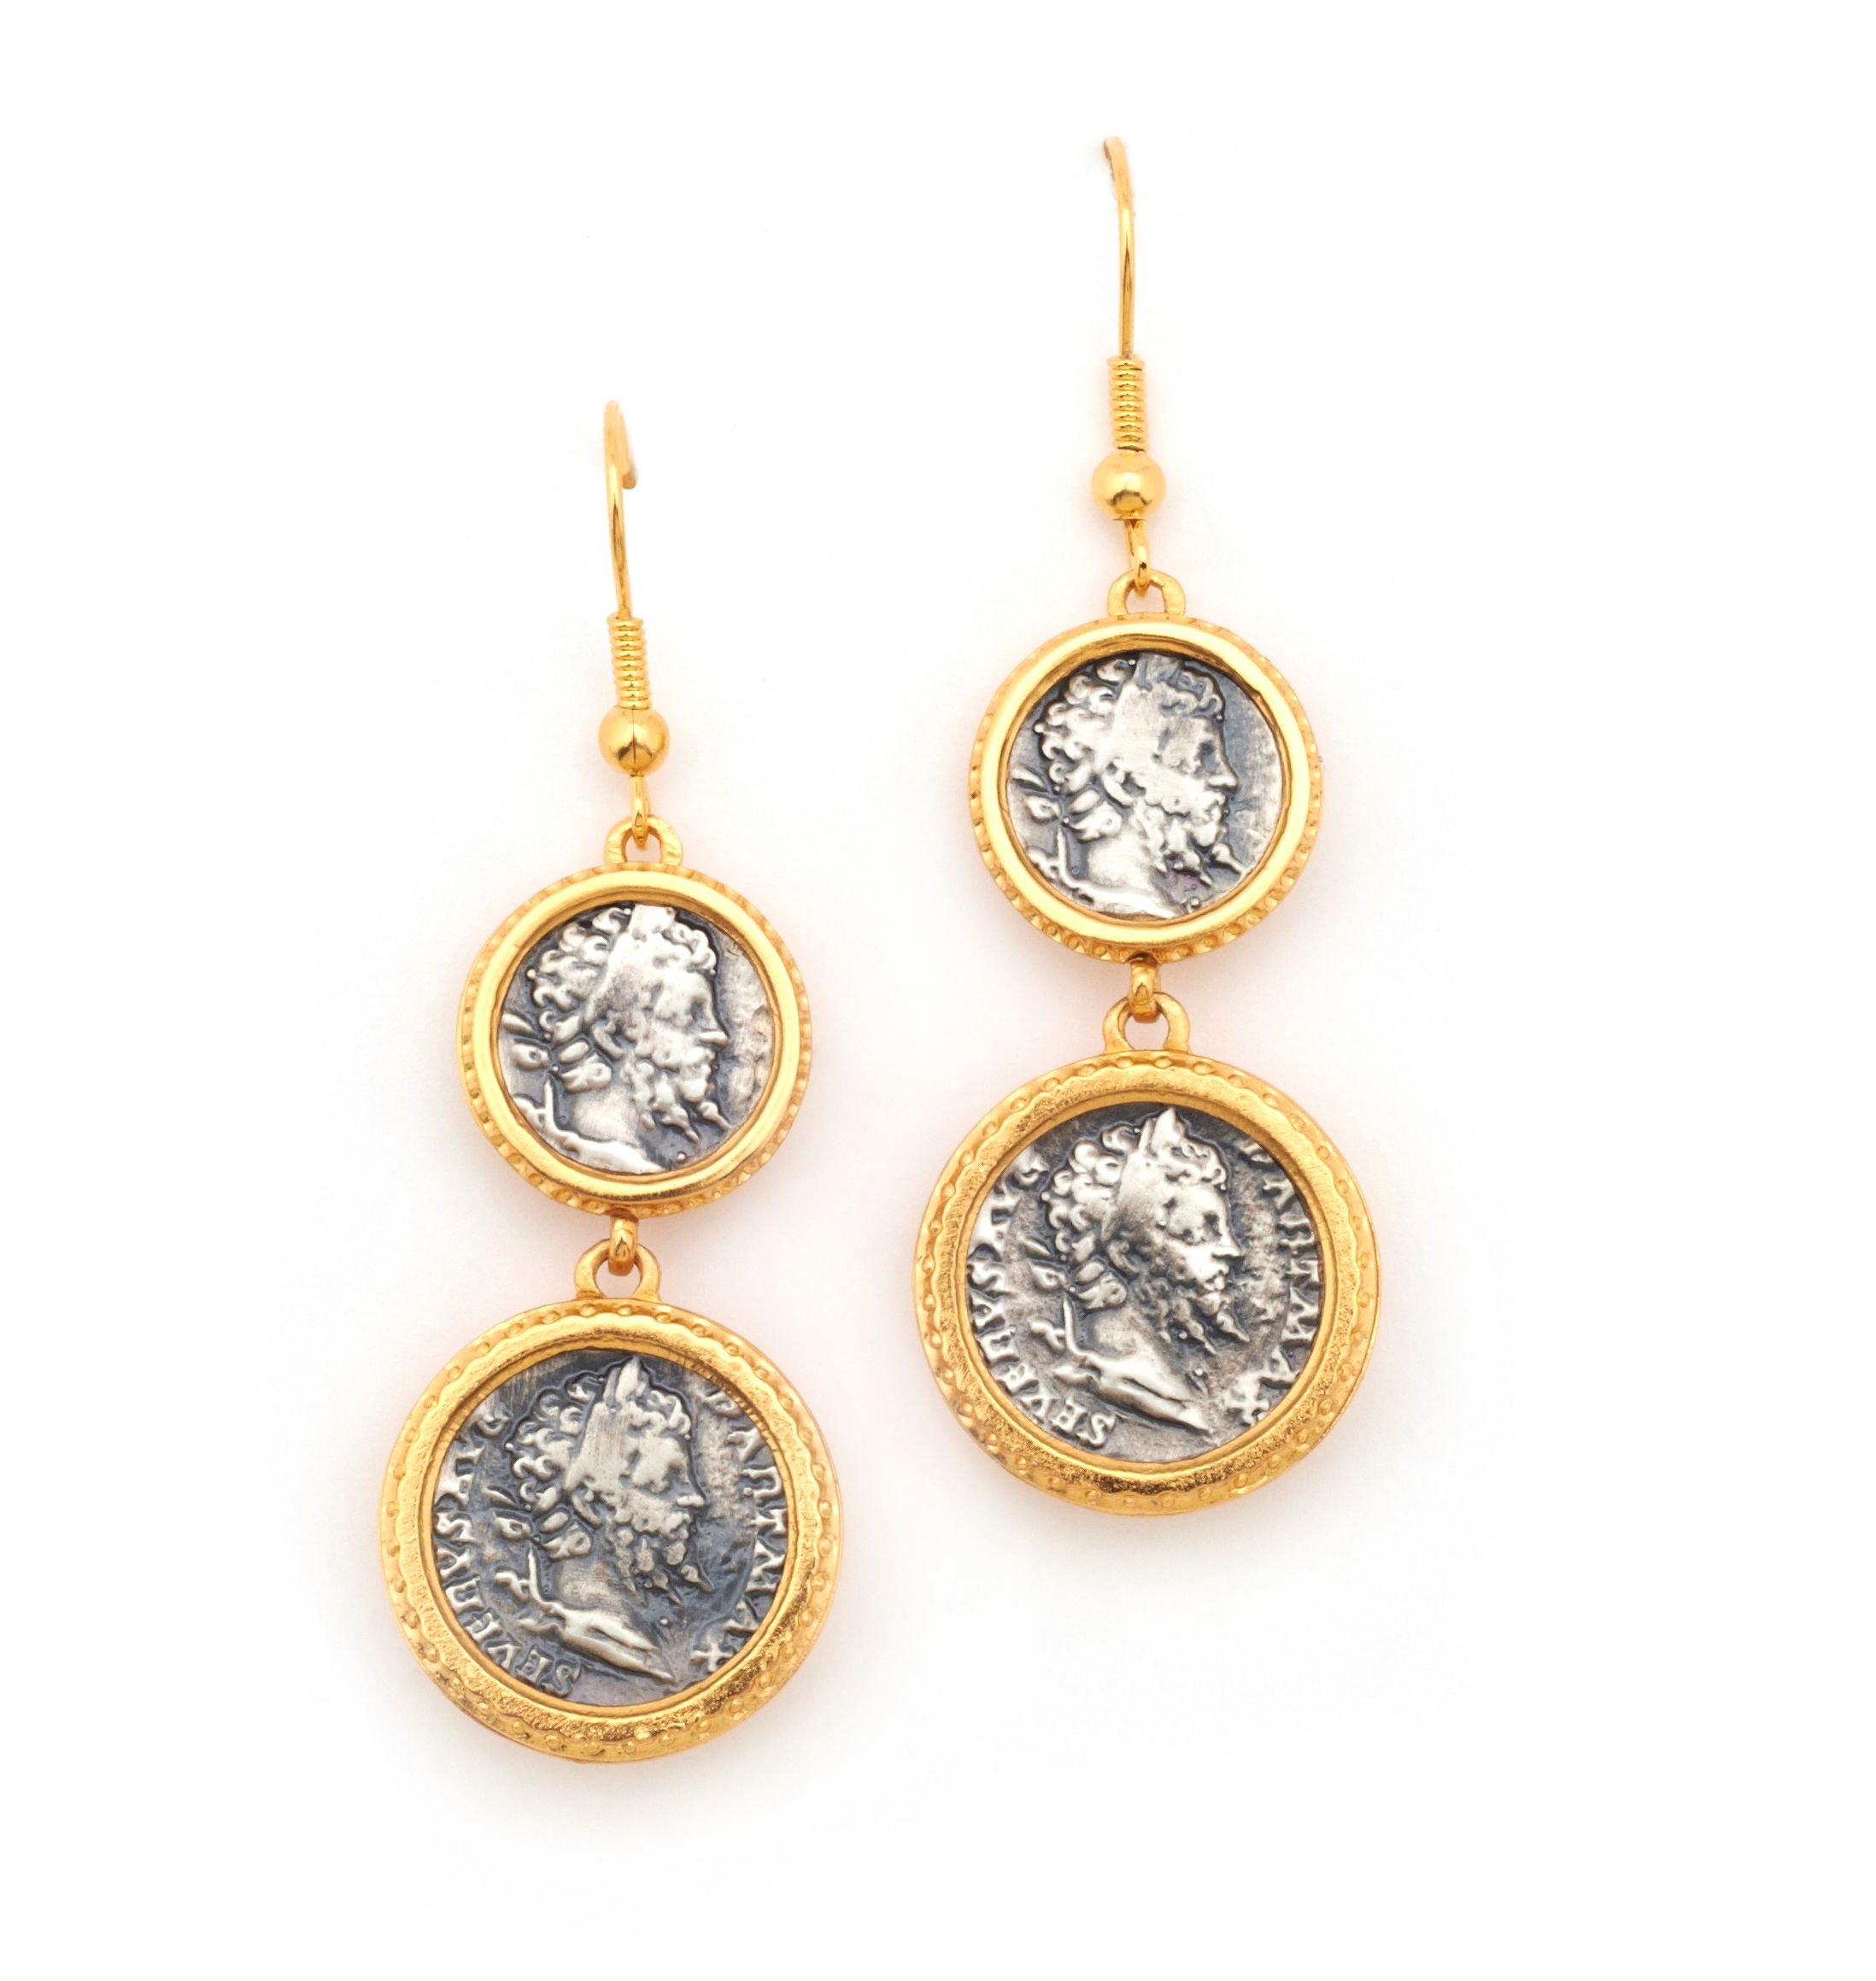 Emperor coin double drop earrings